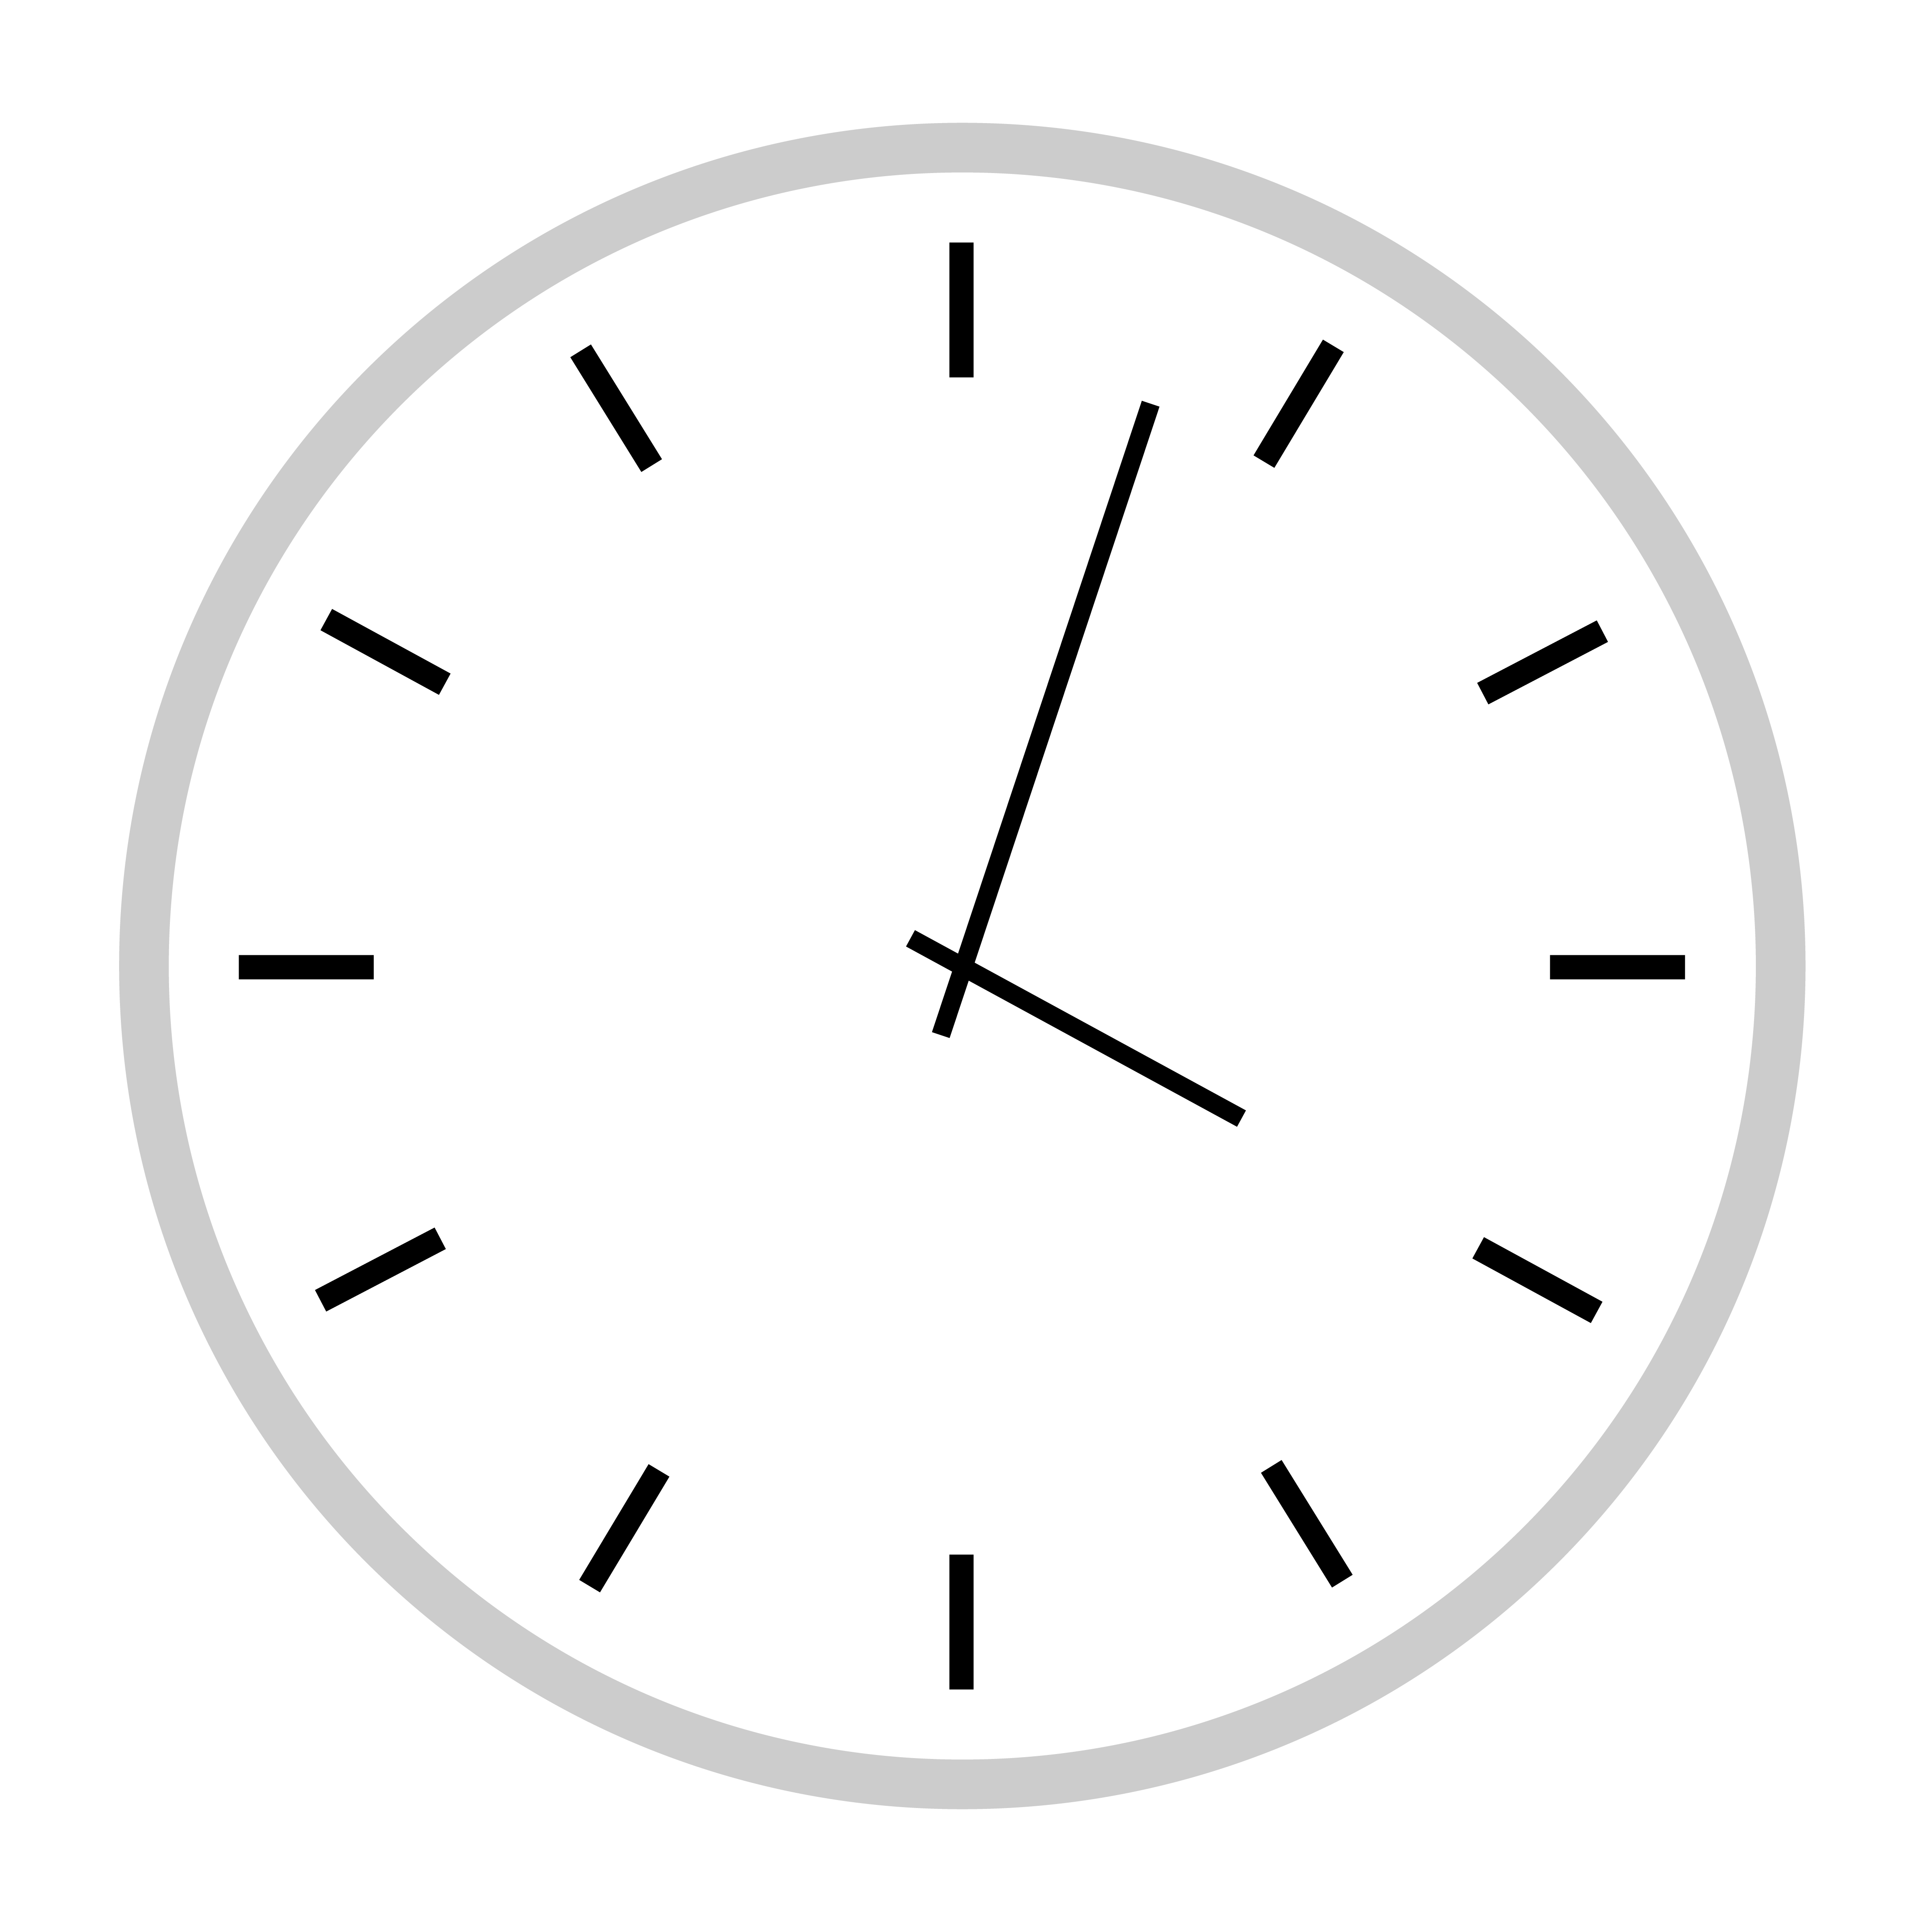 Clocks-Time-03.png